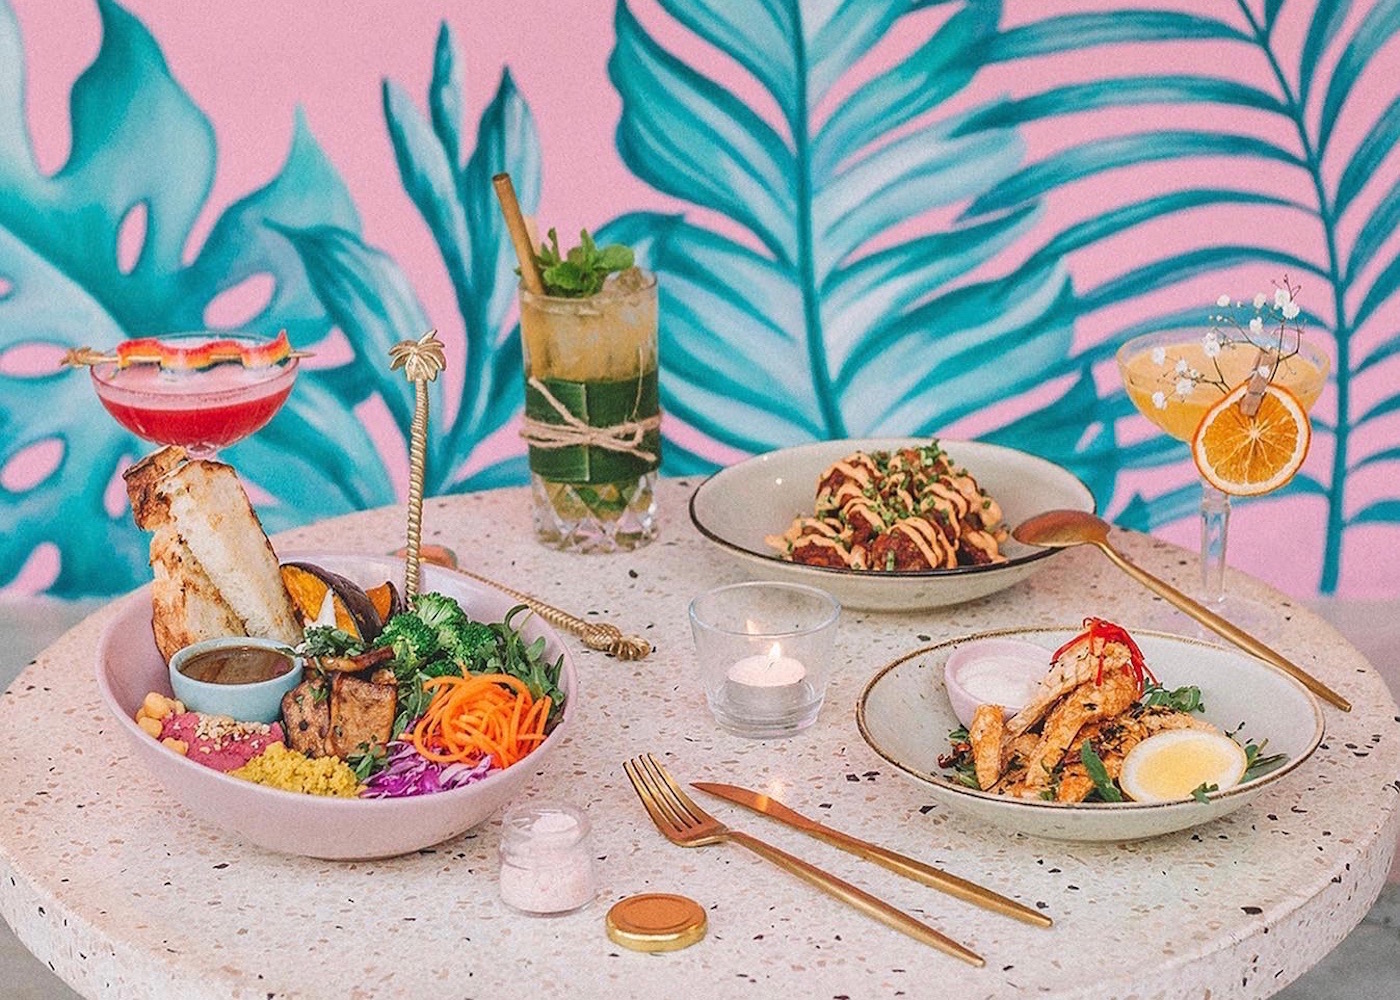 The 33 best vegan restaurants in Bali: Where to find plant-based menus & vegetarian-friendly food you'll LOVE!